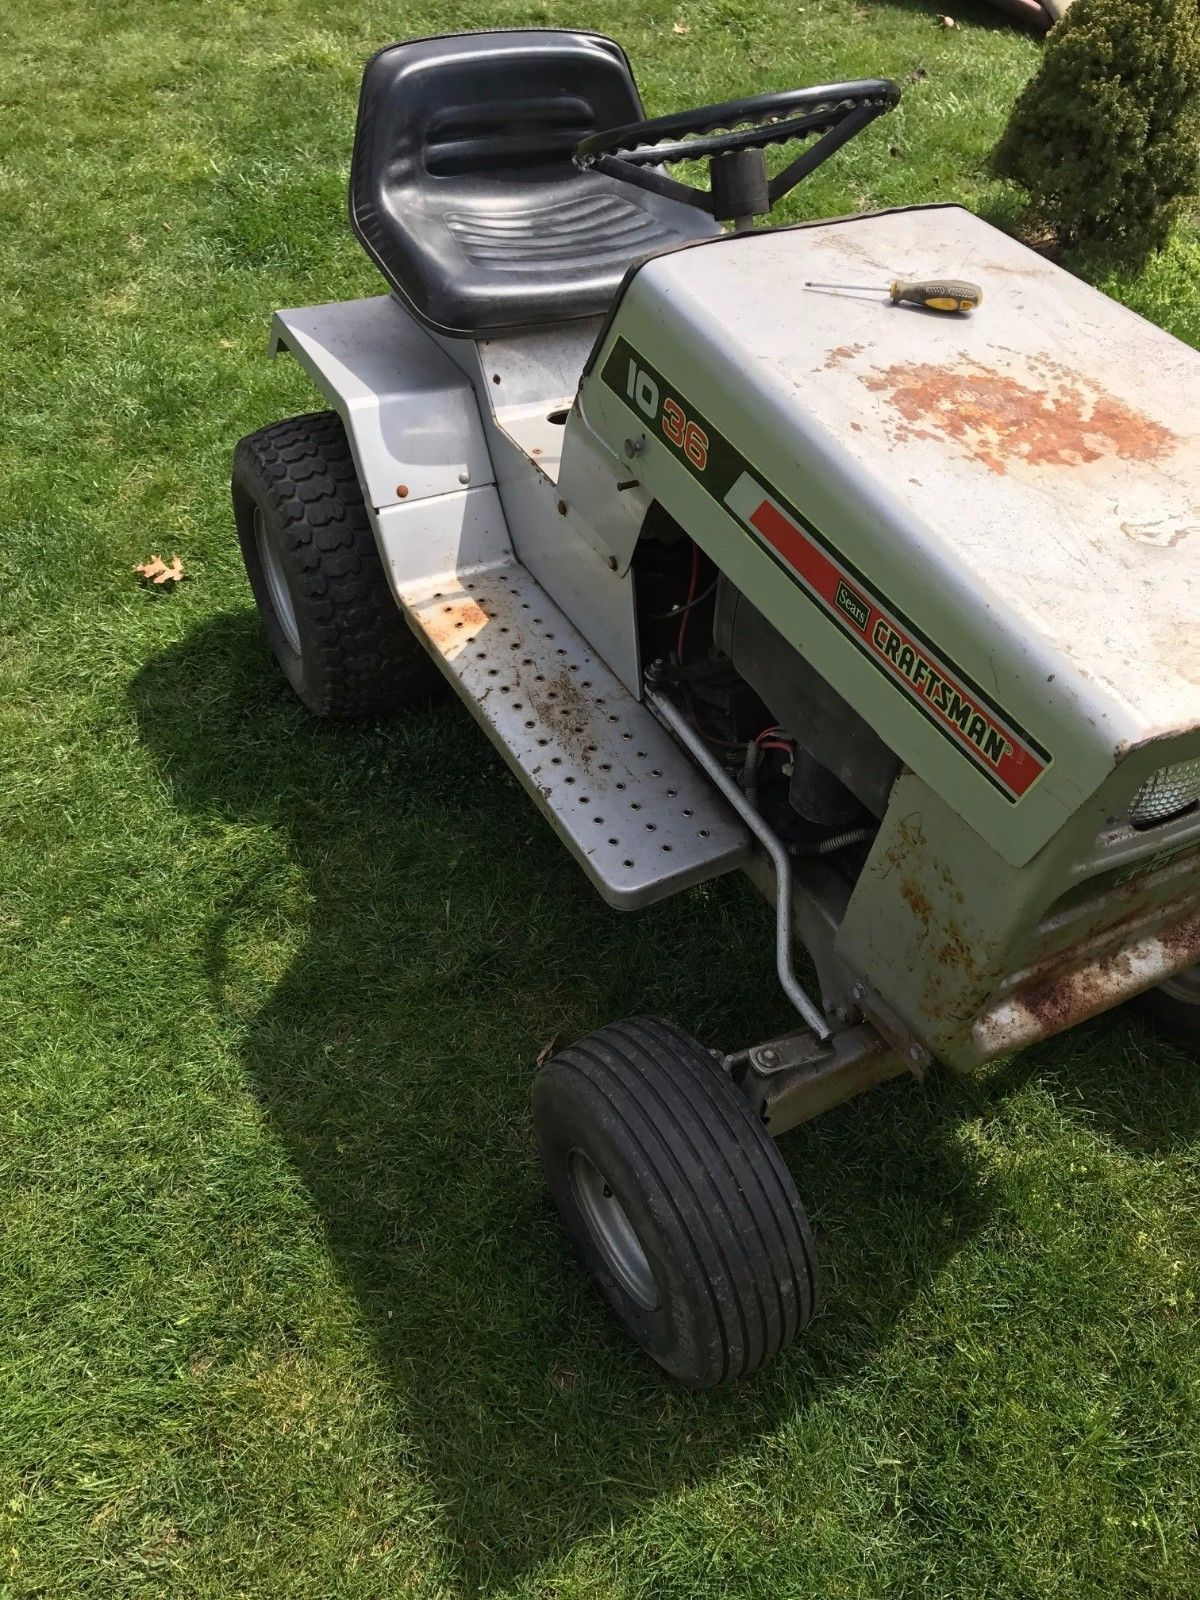 Sears Riding Tractor Mower Craftsman 10 36 Tractor Mower Riding